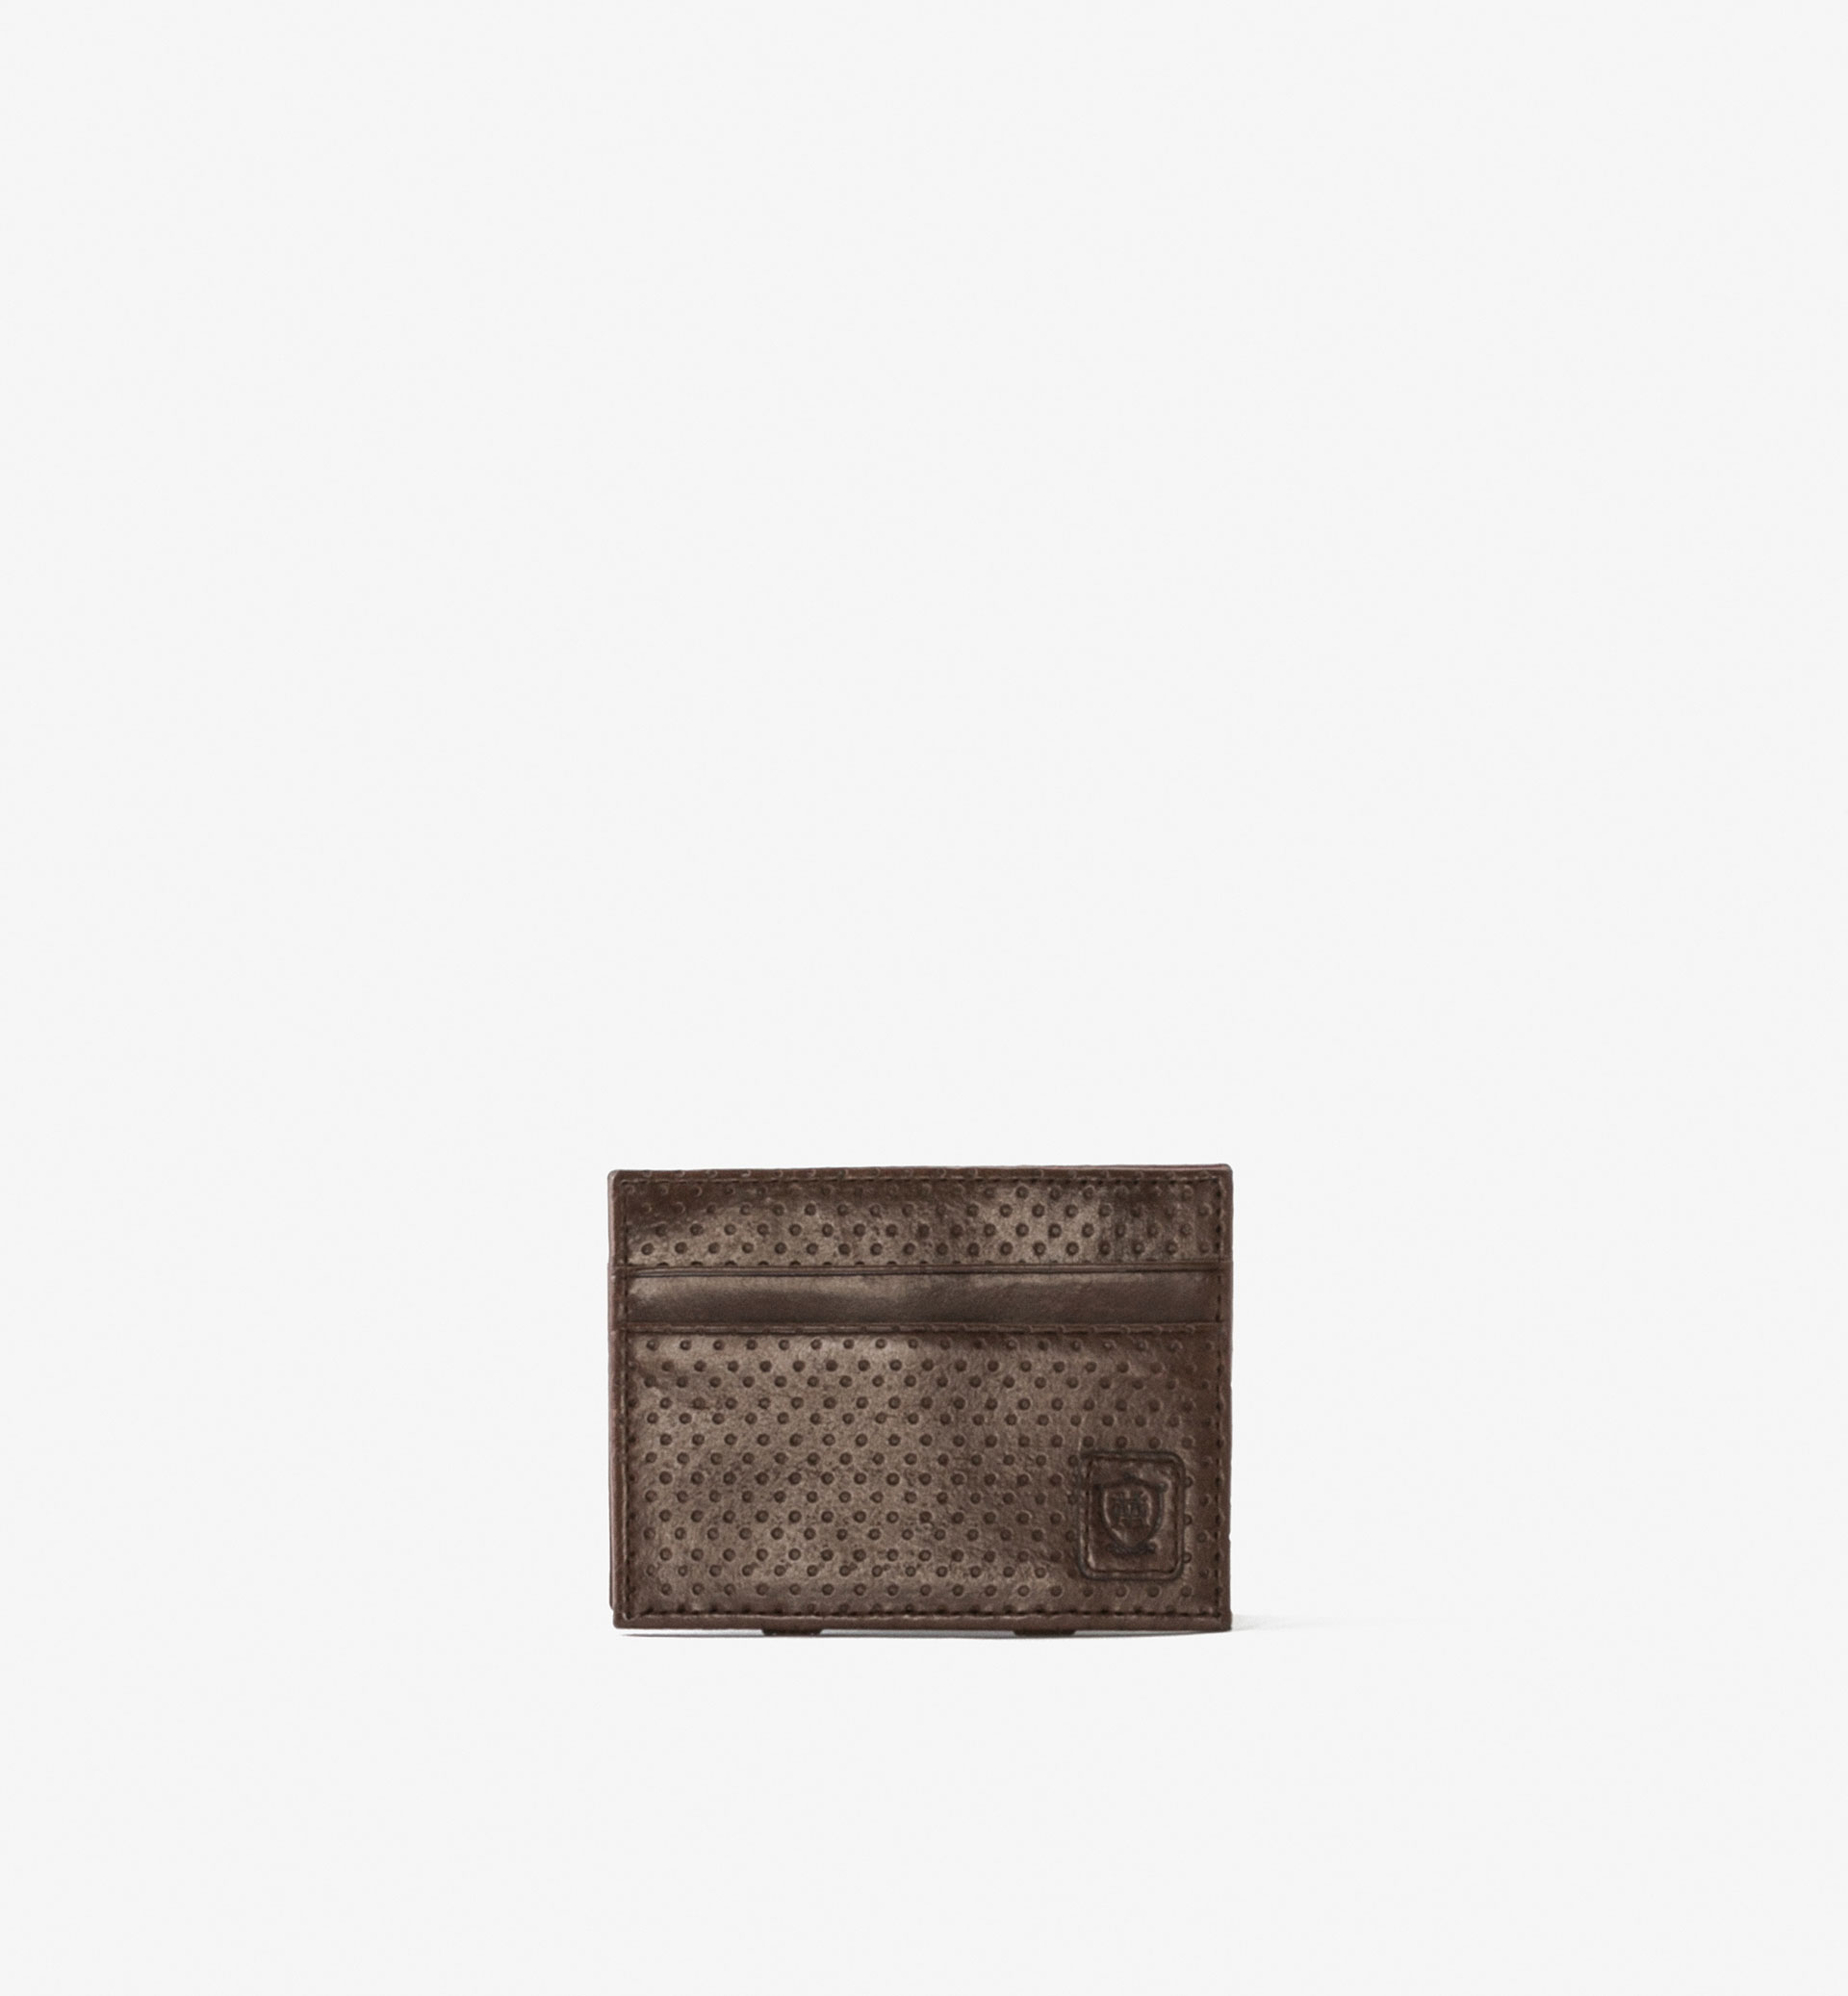 LIMITED EDITION PERFORATED LEATHER MAGIC WALLET